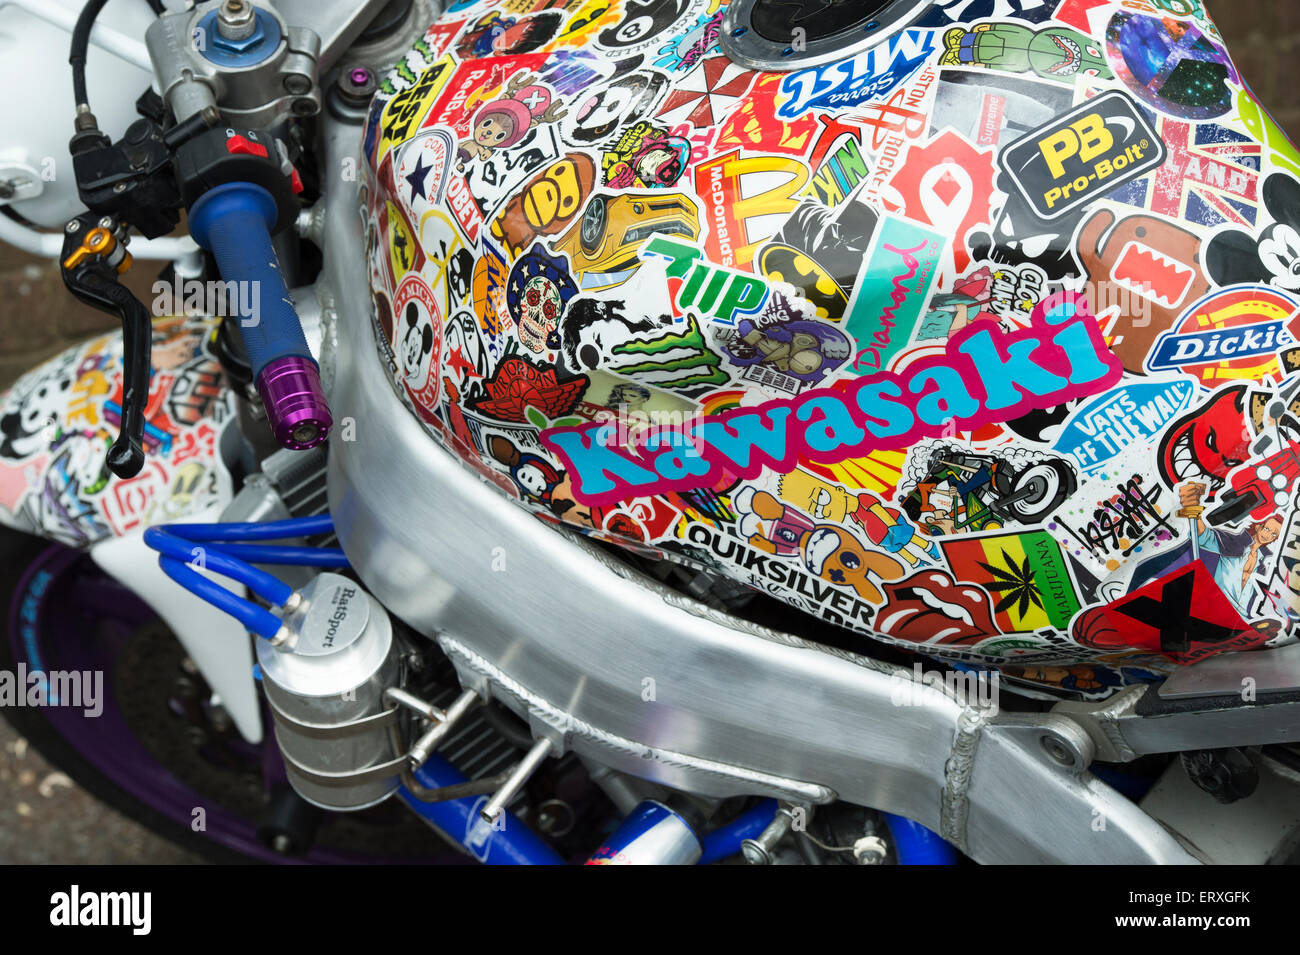 Kawasaki Motorcycle With A Petrol Tank Covered In Stickers Stock - Kawasaki motorcycles stickers